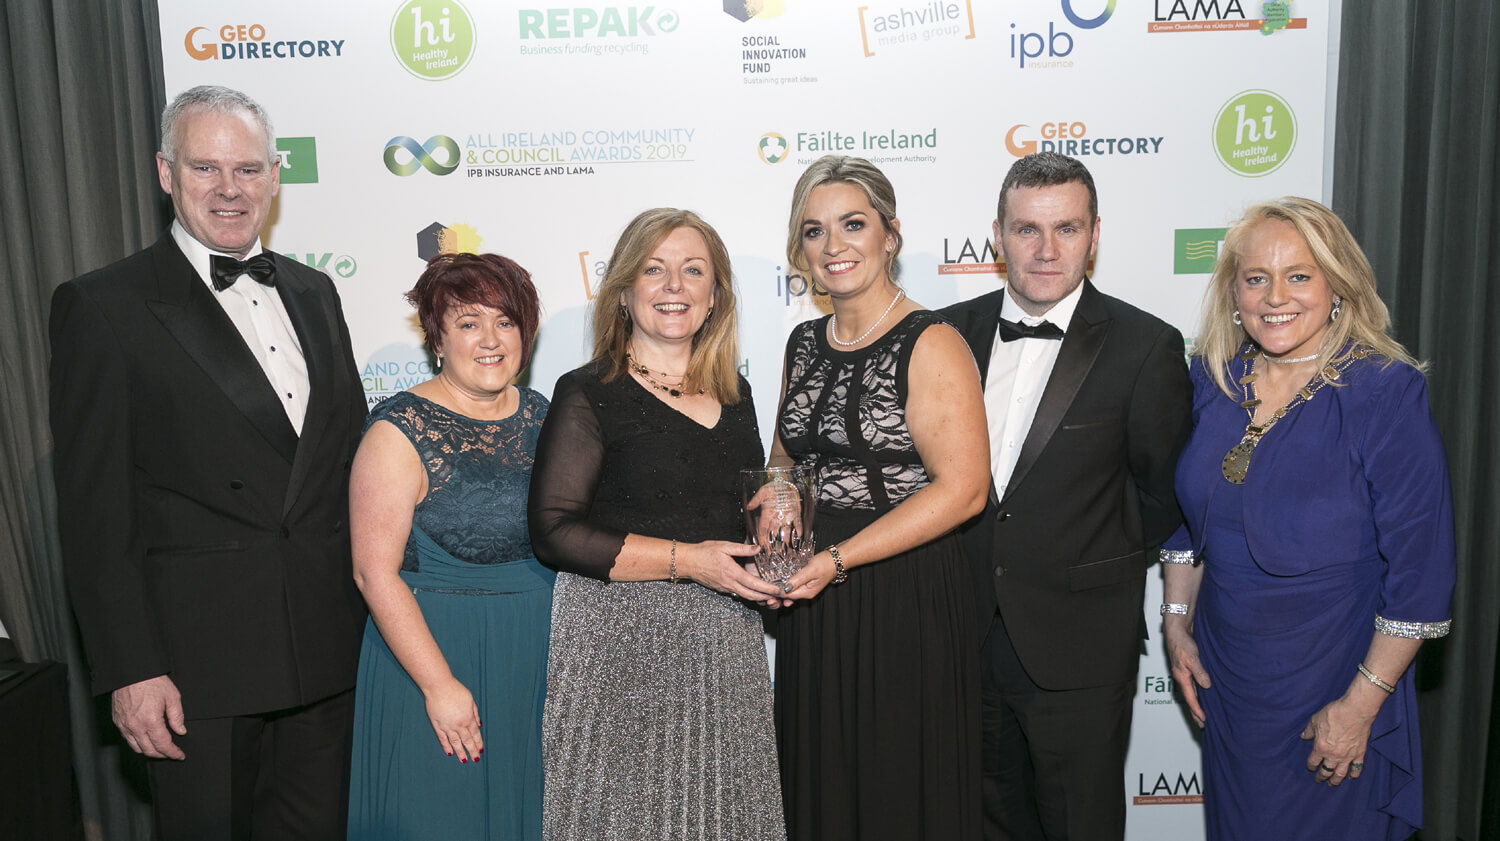 Best Tourism Award for South and West Sligo Tourism at Croke Park